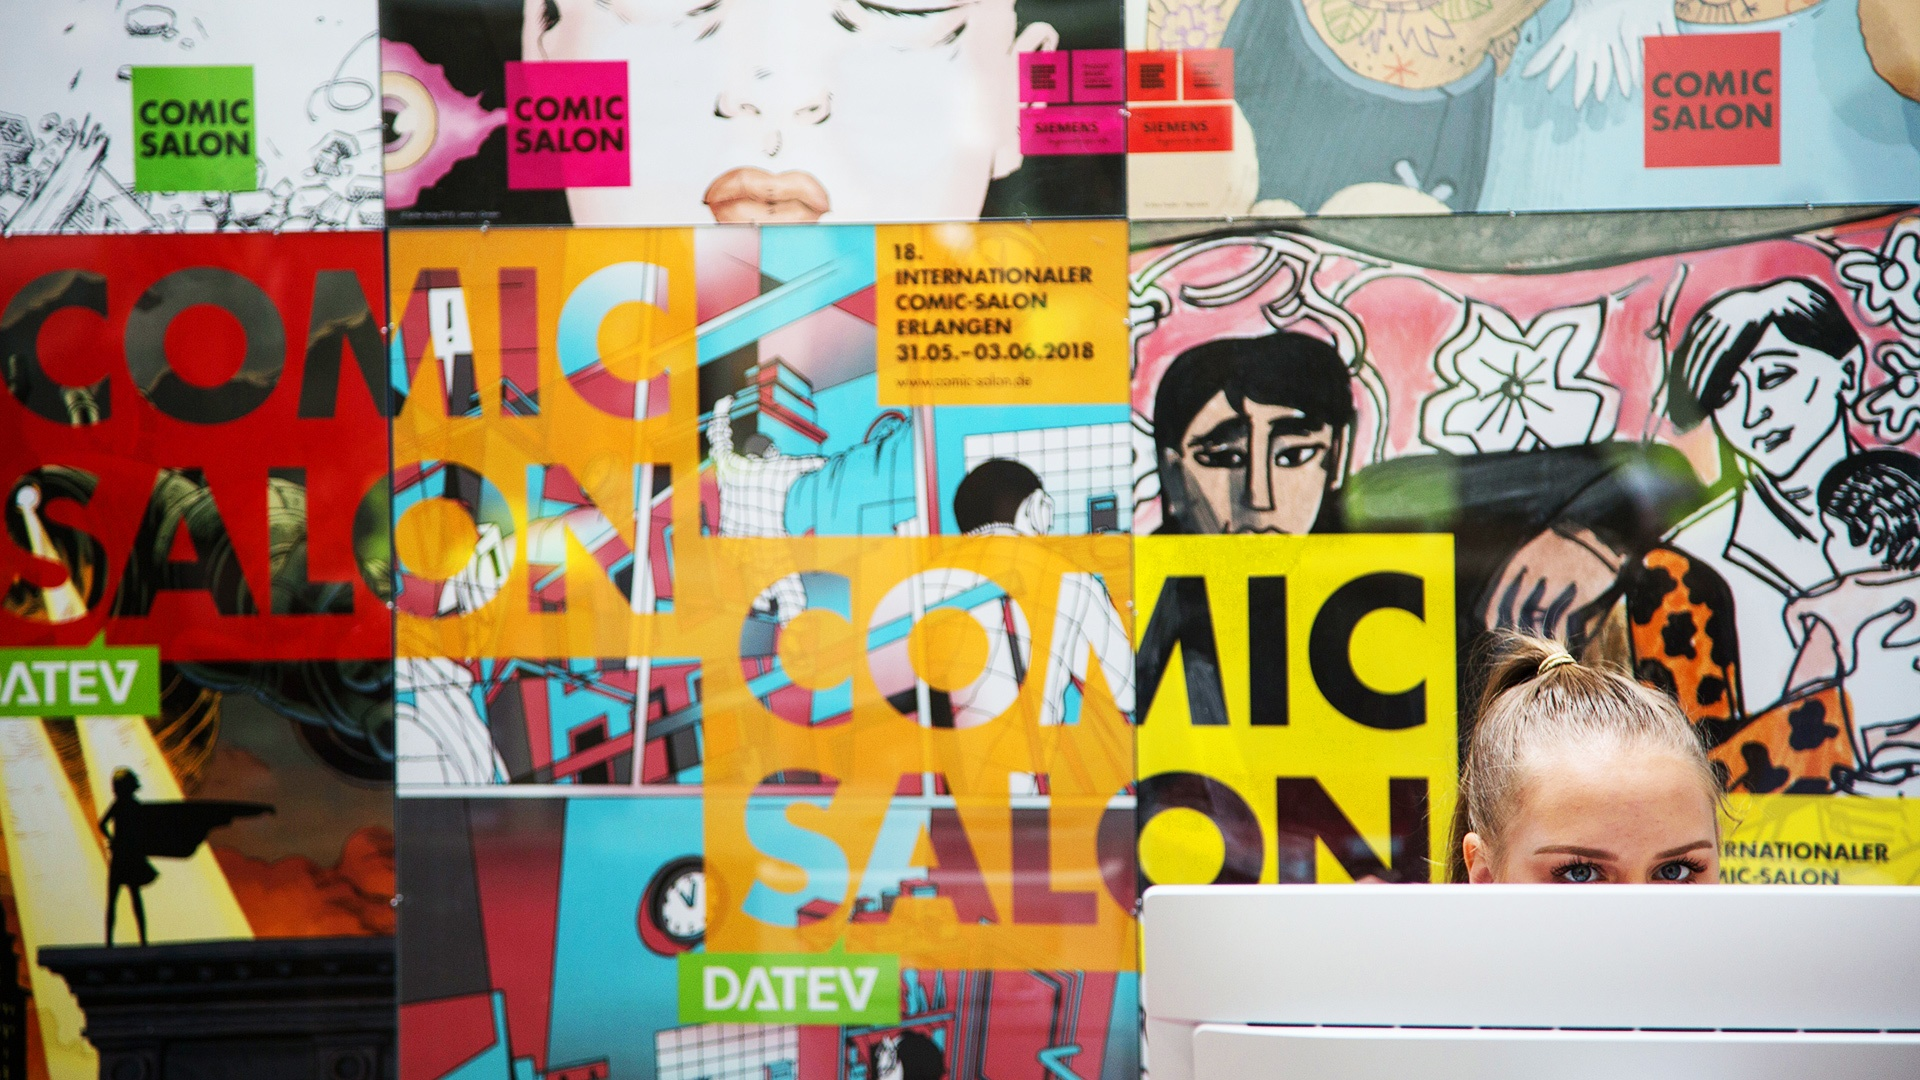 18. Internationaler Comic-Salon Erlangen